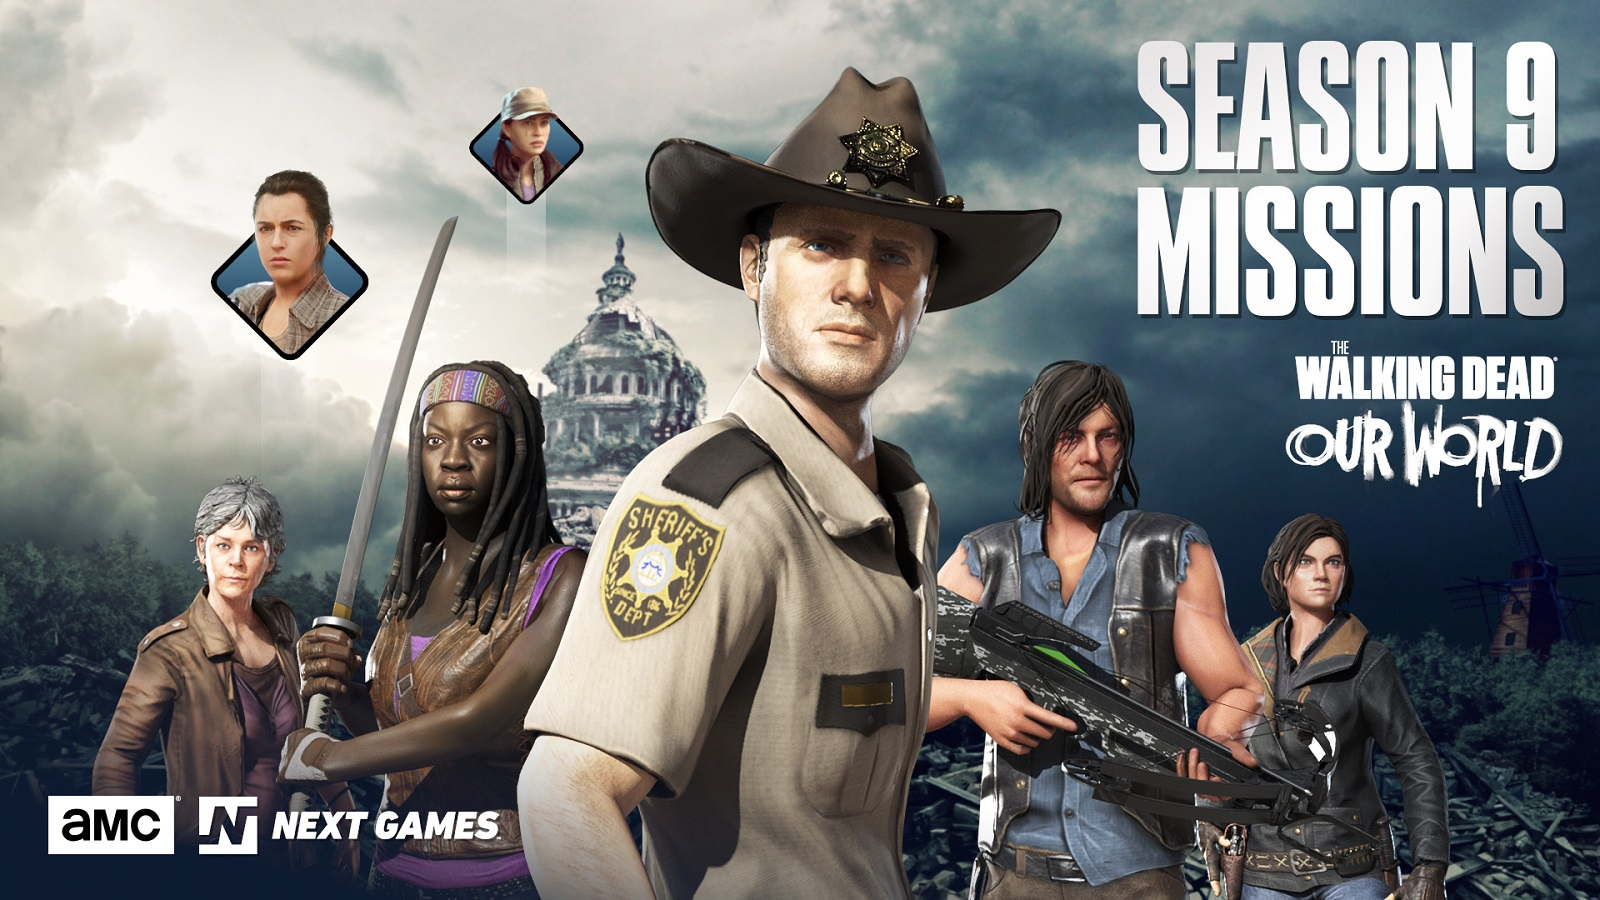 The Walking Dead: Our World Will Be Receiving New Exclusive Season 9 Missions